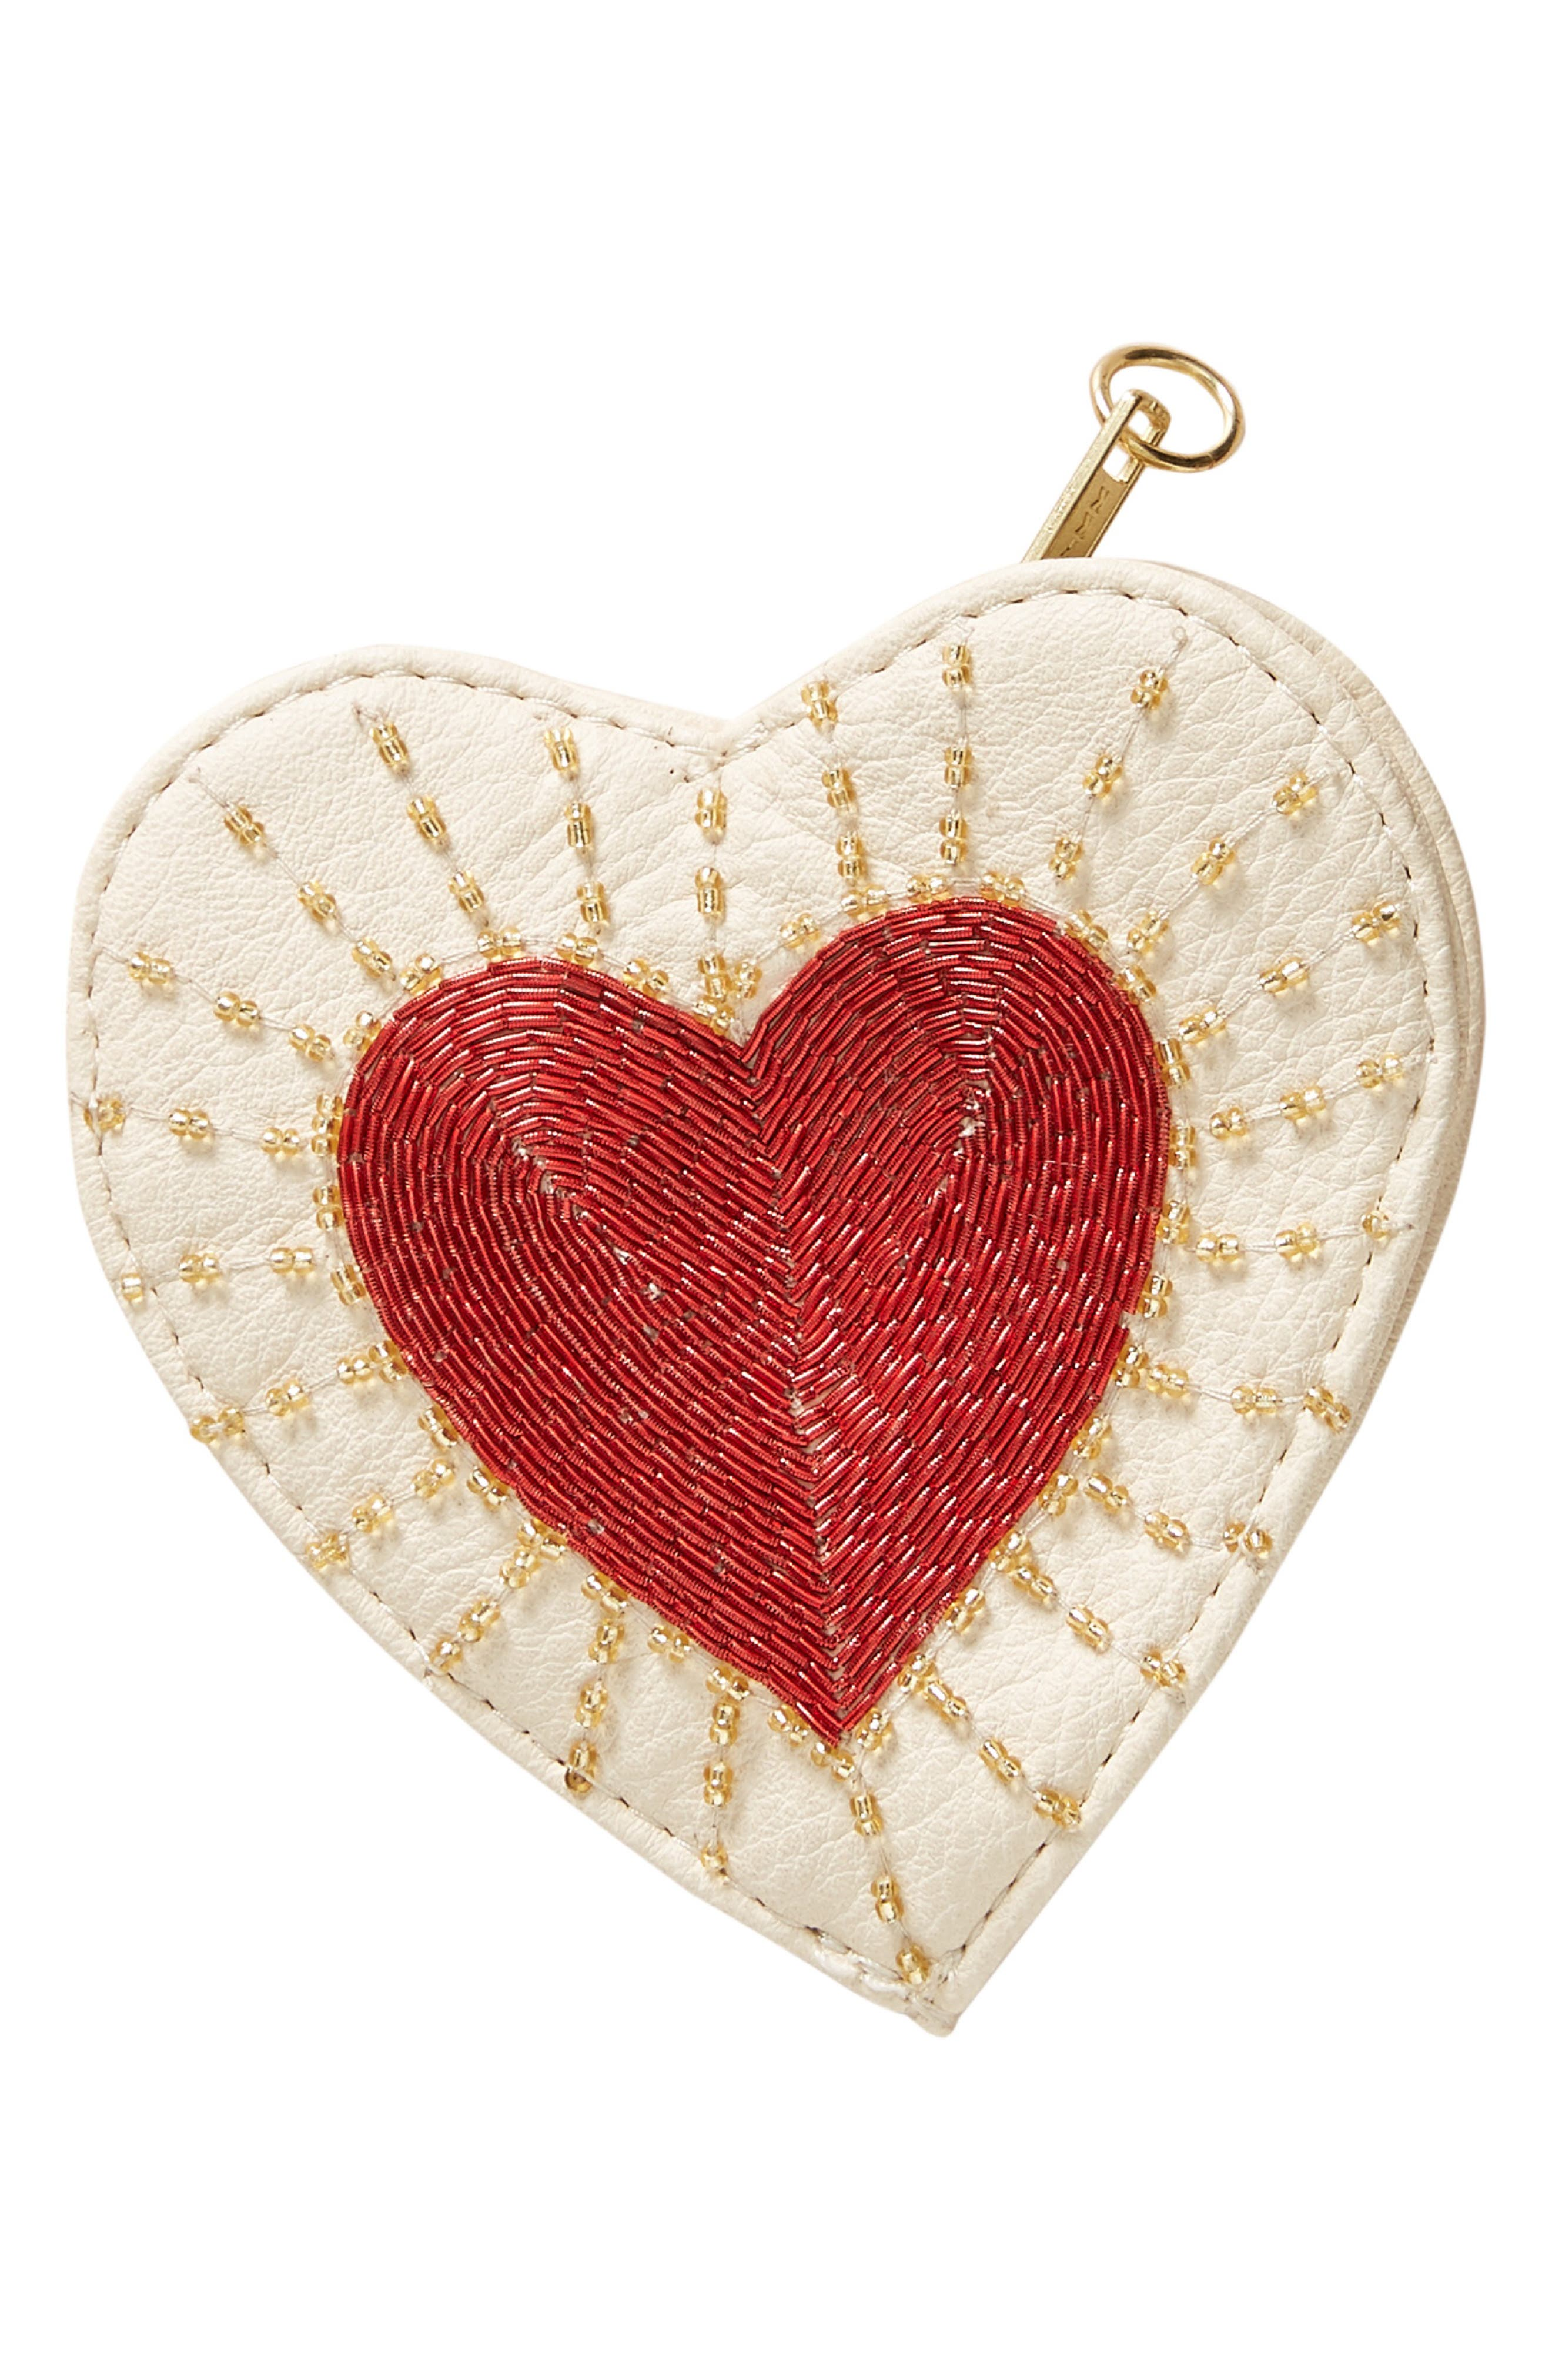 Embellished Heart Pouch,                             Alternate thumbnail 3, color,                             901